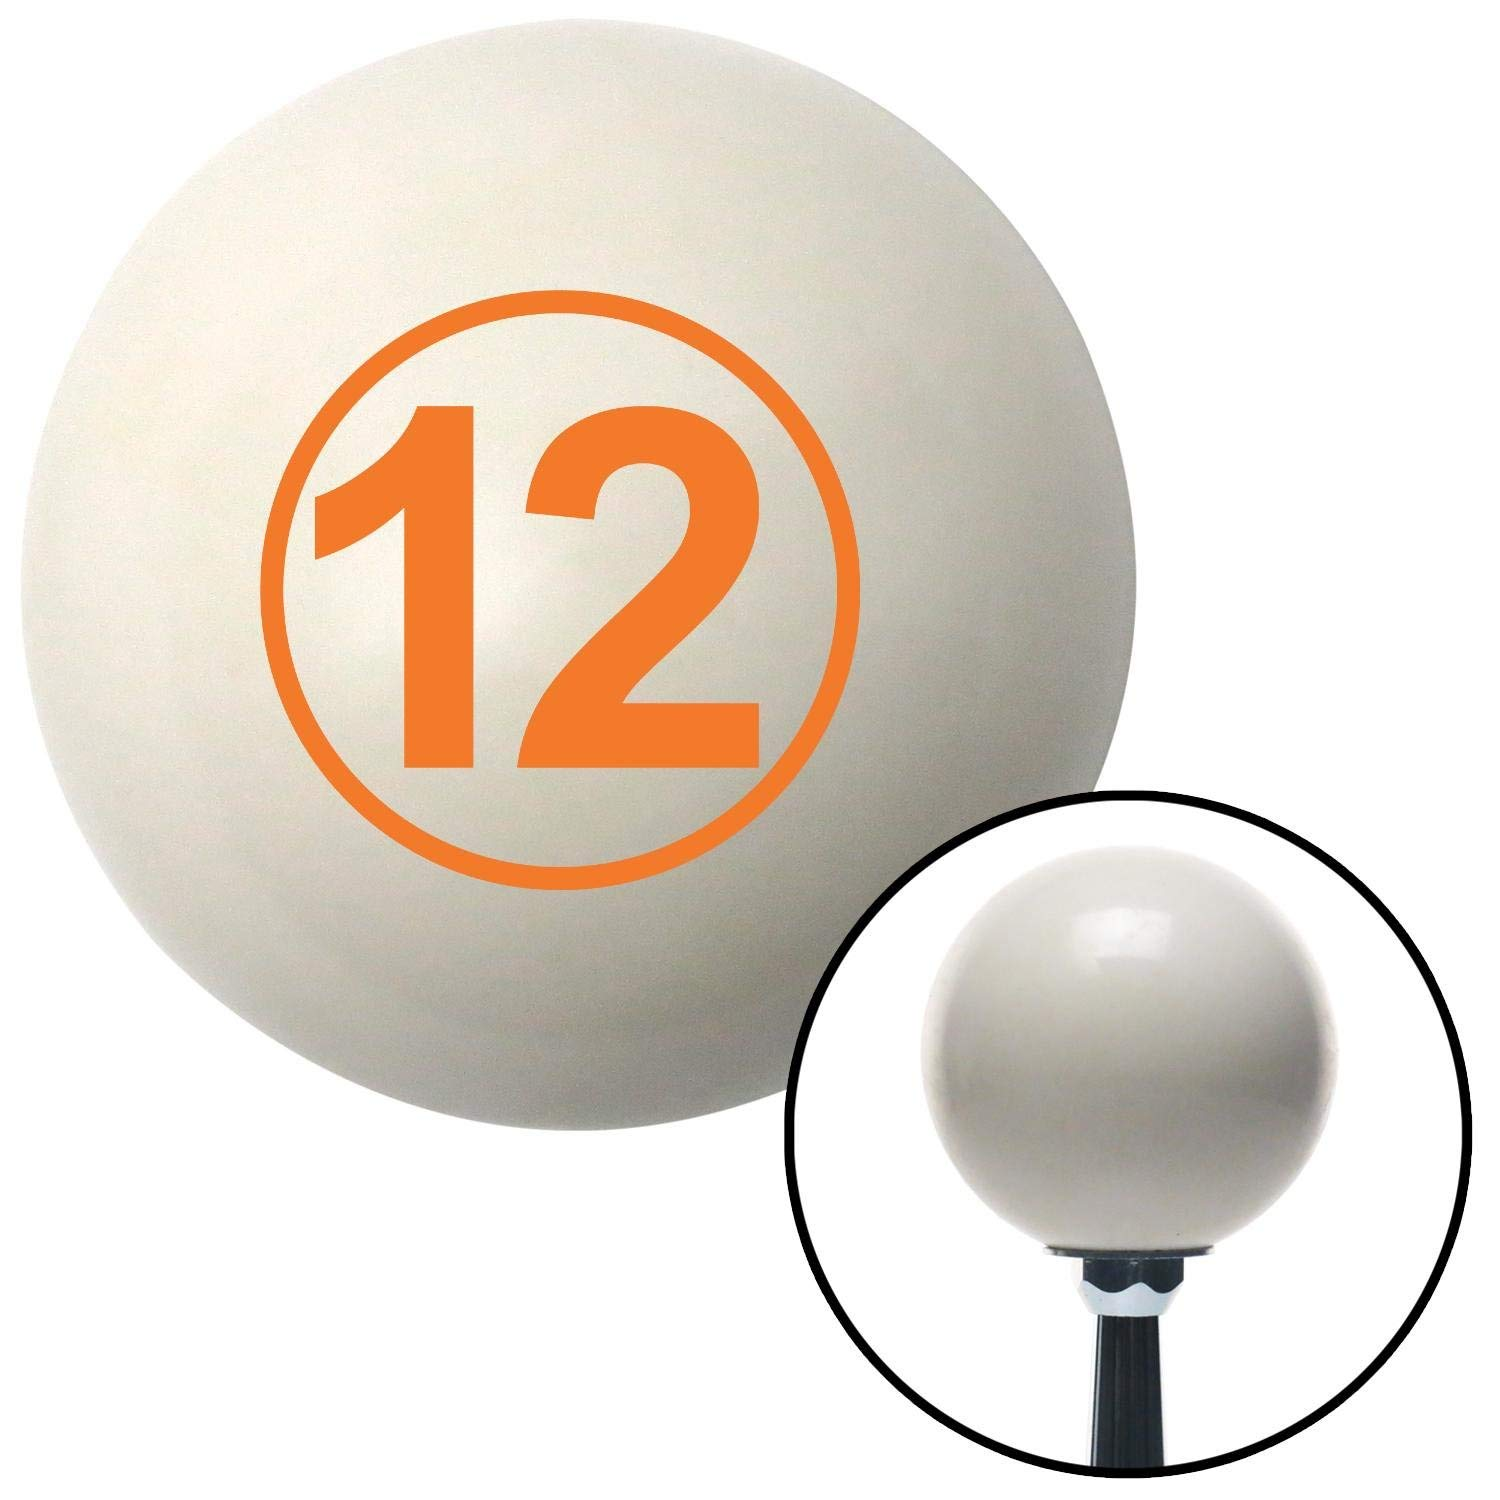 Orange Ball 12 American Shifter 30362 Ivory Shift Knob with 16mm x 1.5 Insert